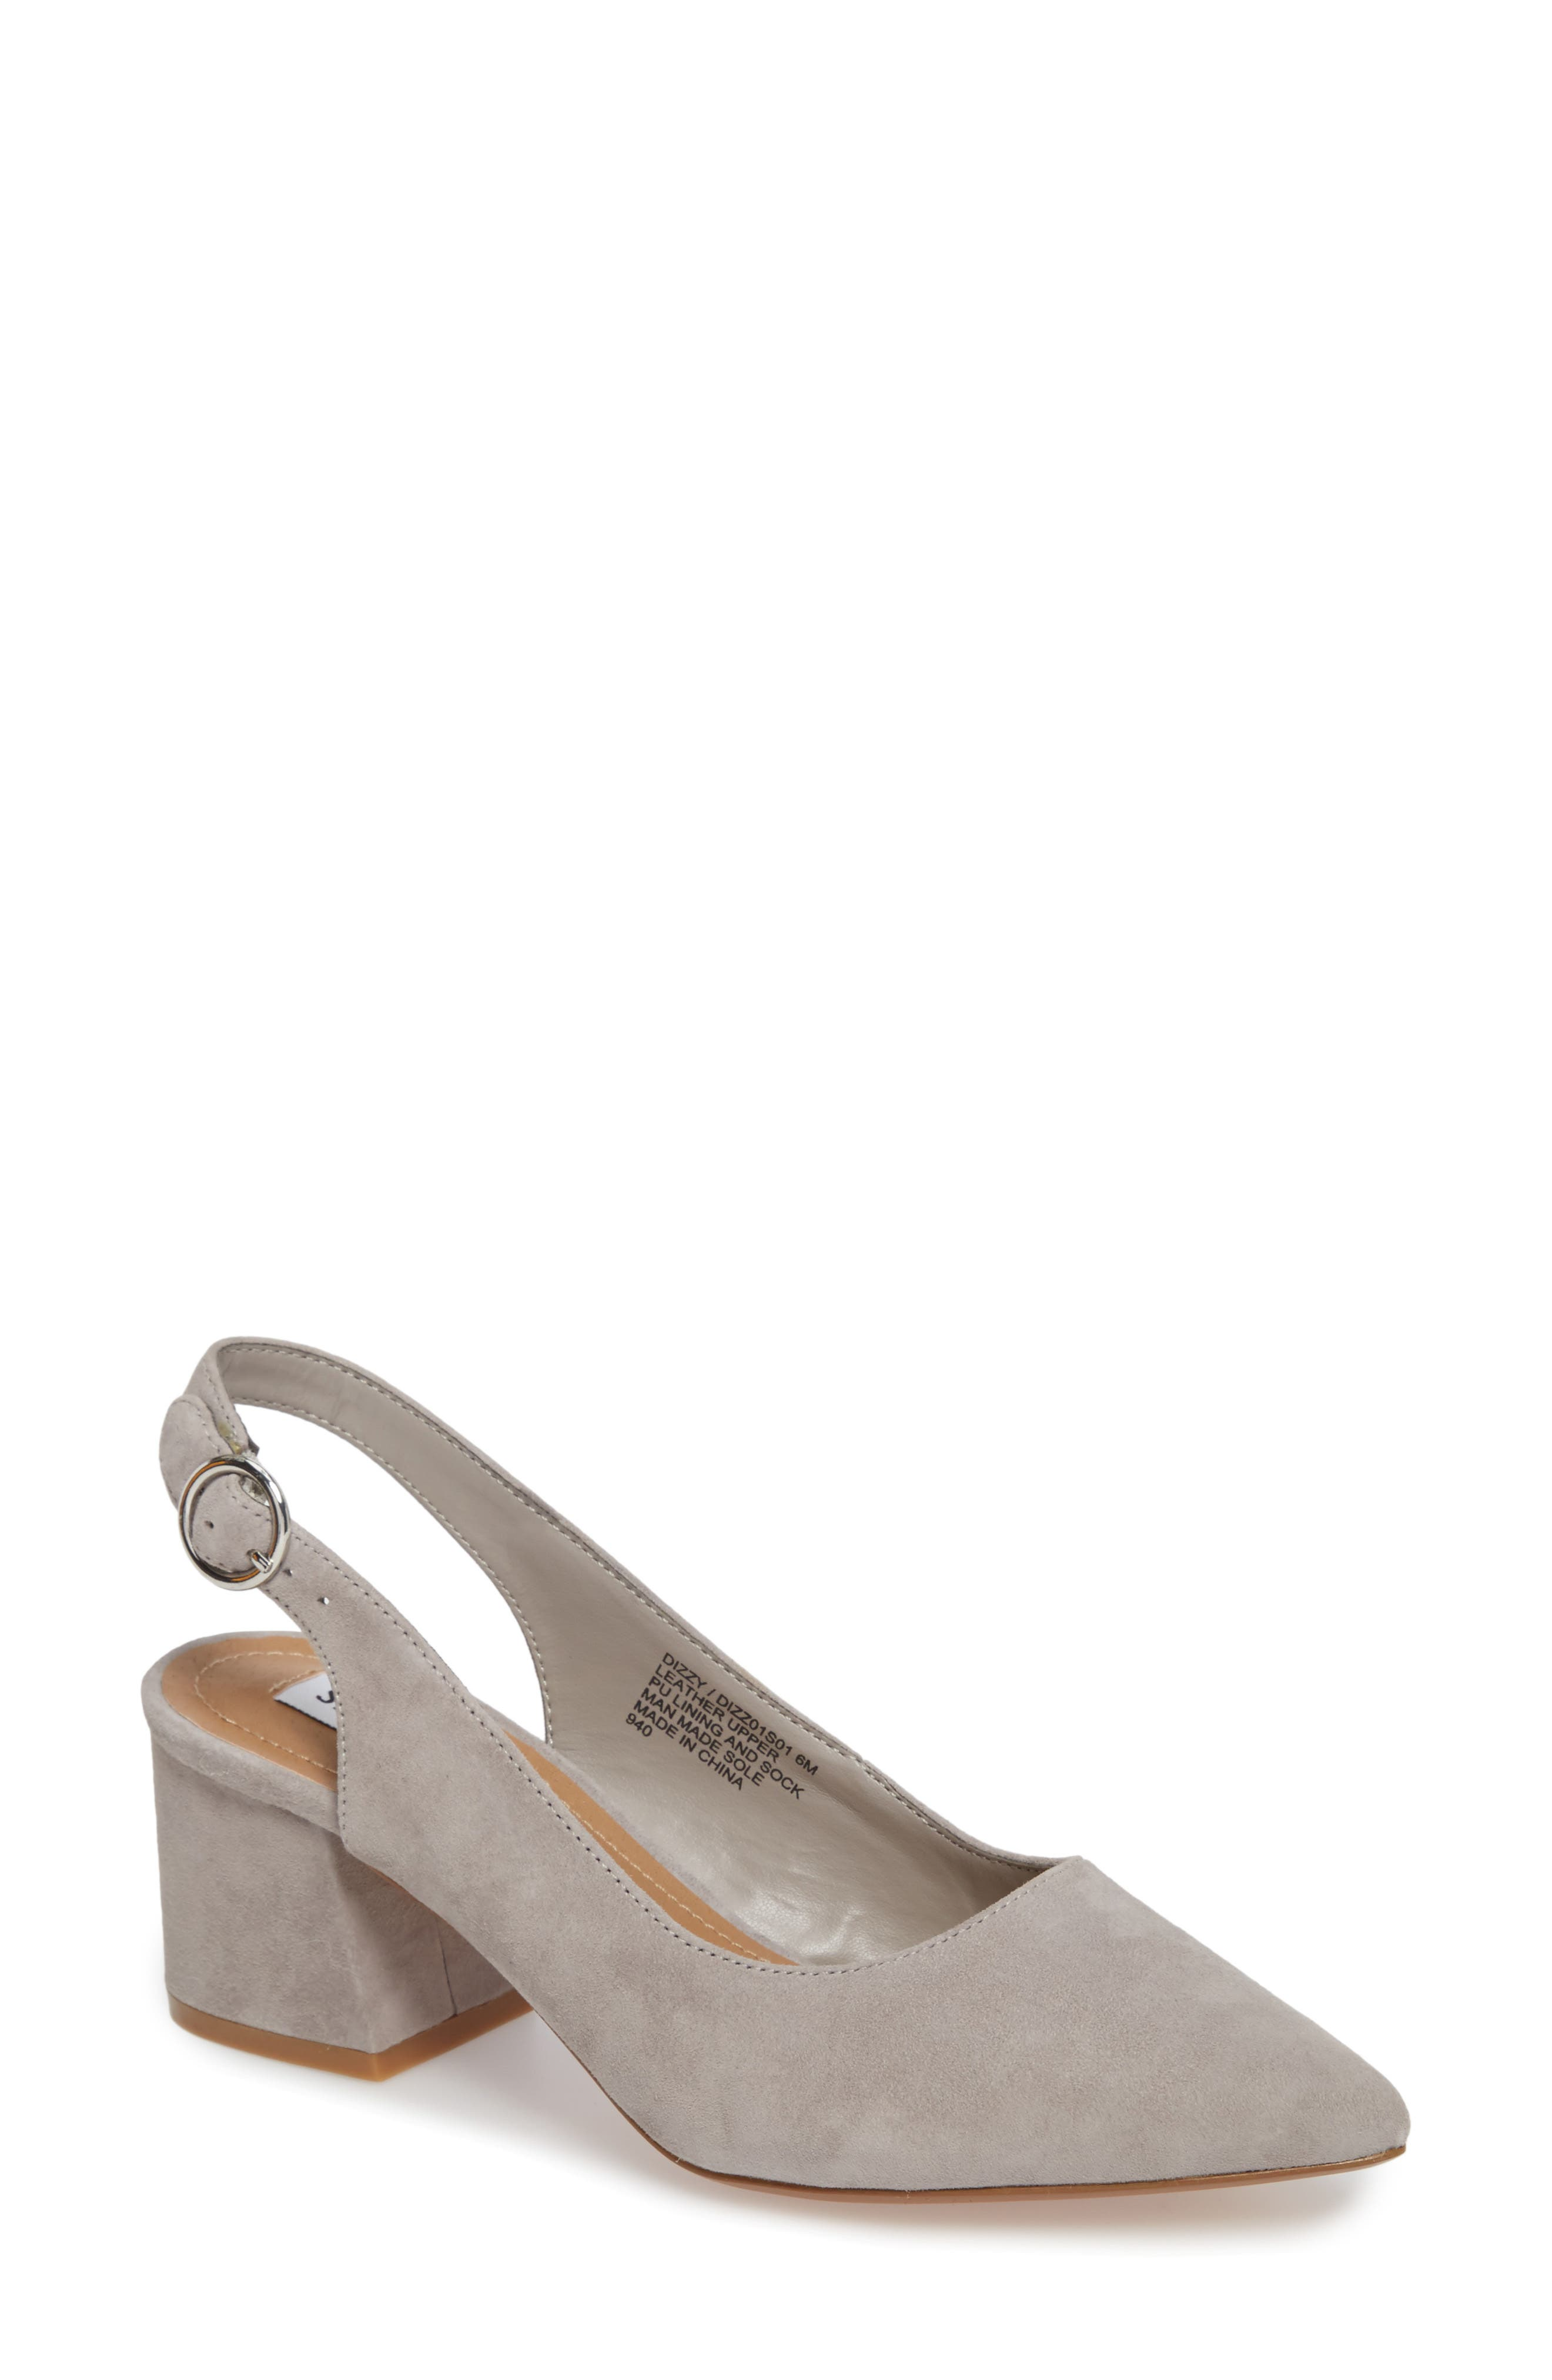 Dizzy Slingback Pump,                         Main,                         color, Grey Suede